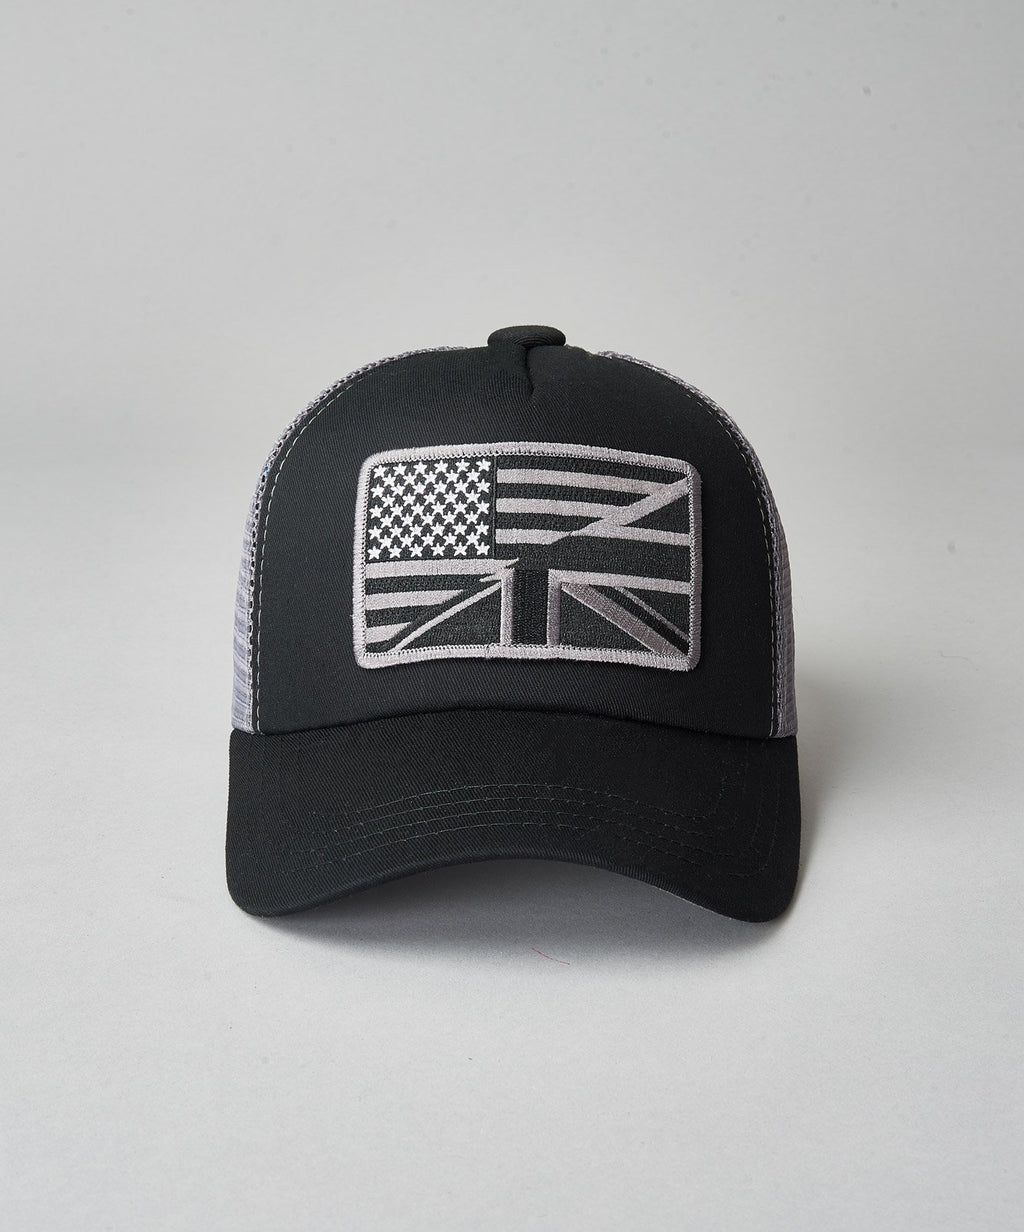 CCCL x ReOrg United Kingdom of America Trucker